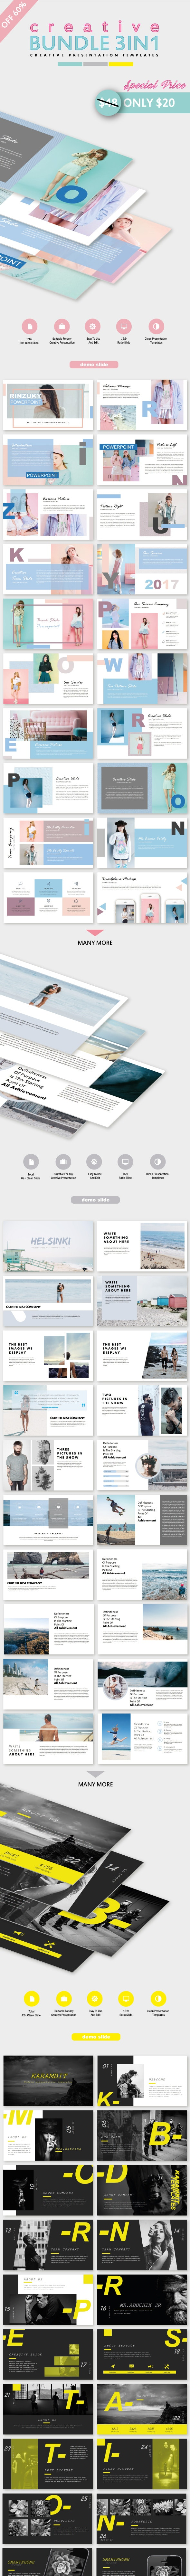 Special Creative Bundle 3 IN 1 PowerPoint Templates - Creative PowerPoint Templates